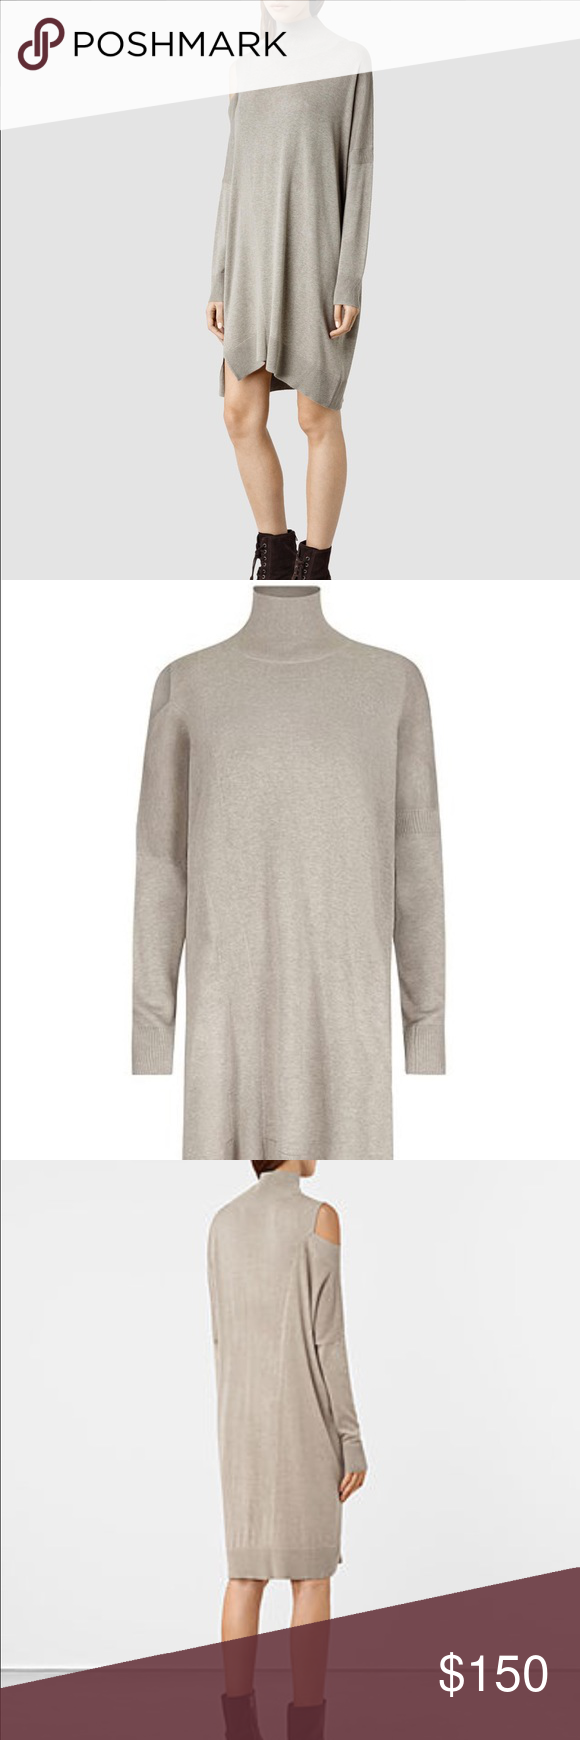 Brand new all saints cecily cut out dress roll neck hand washing